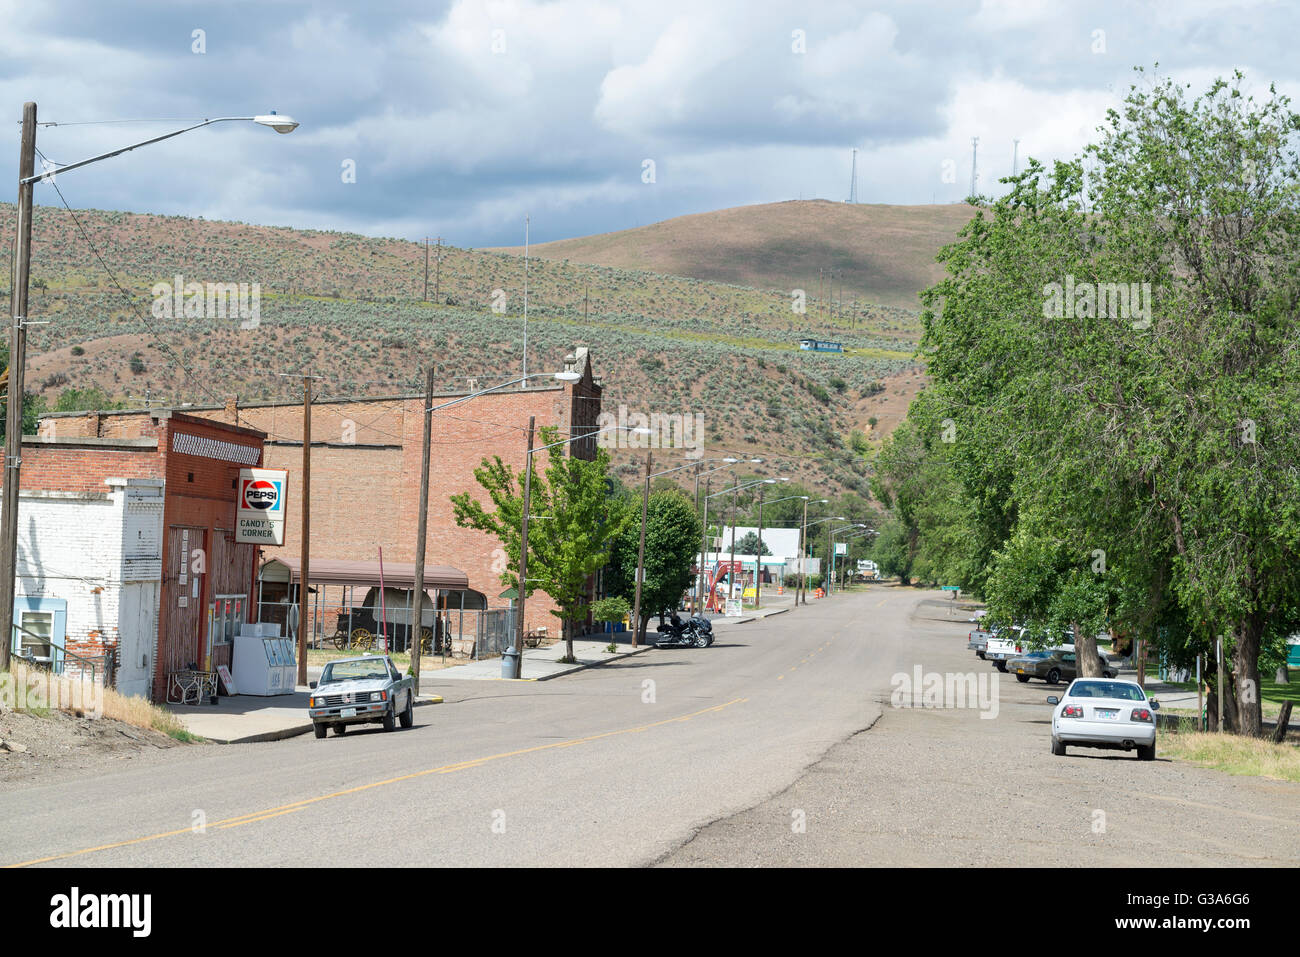 Main street in the small town of Huntington, Oregon. - Stock Image